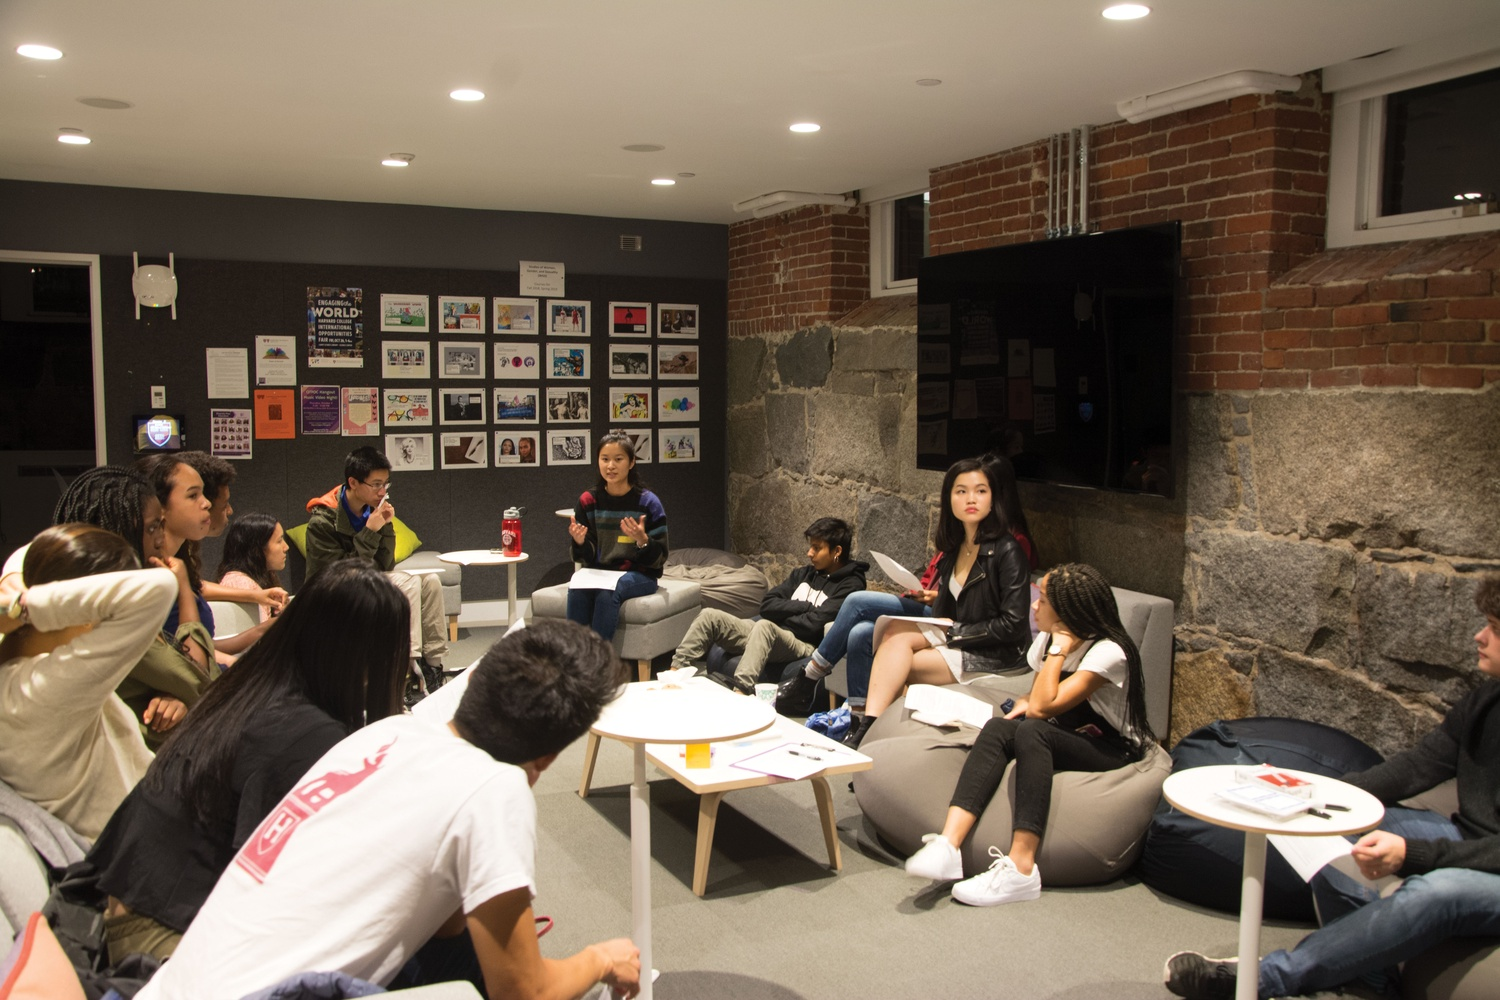 Students meet in Grays Hall Basement to discuss the ongoing affirmative action lawsuit against Harvard.